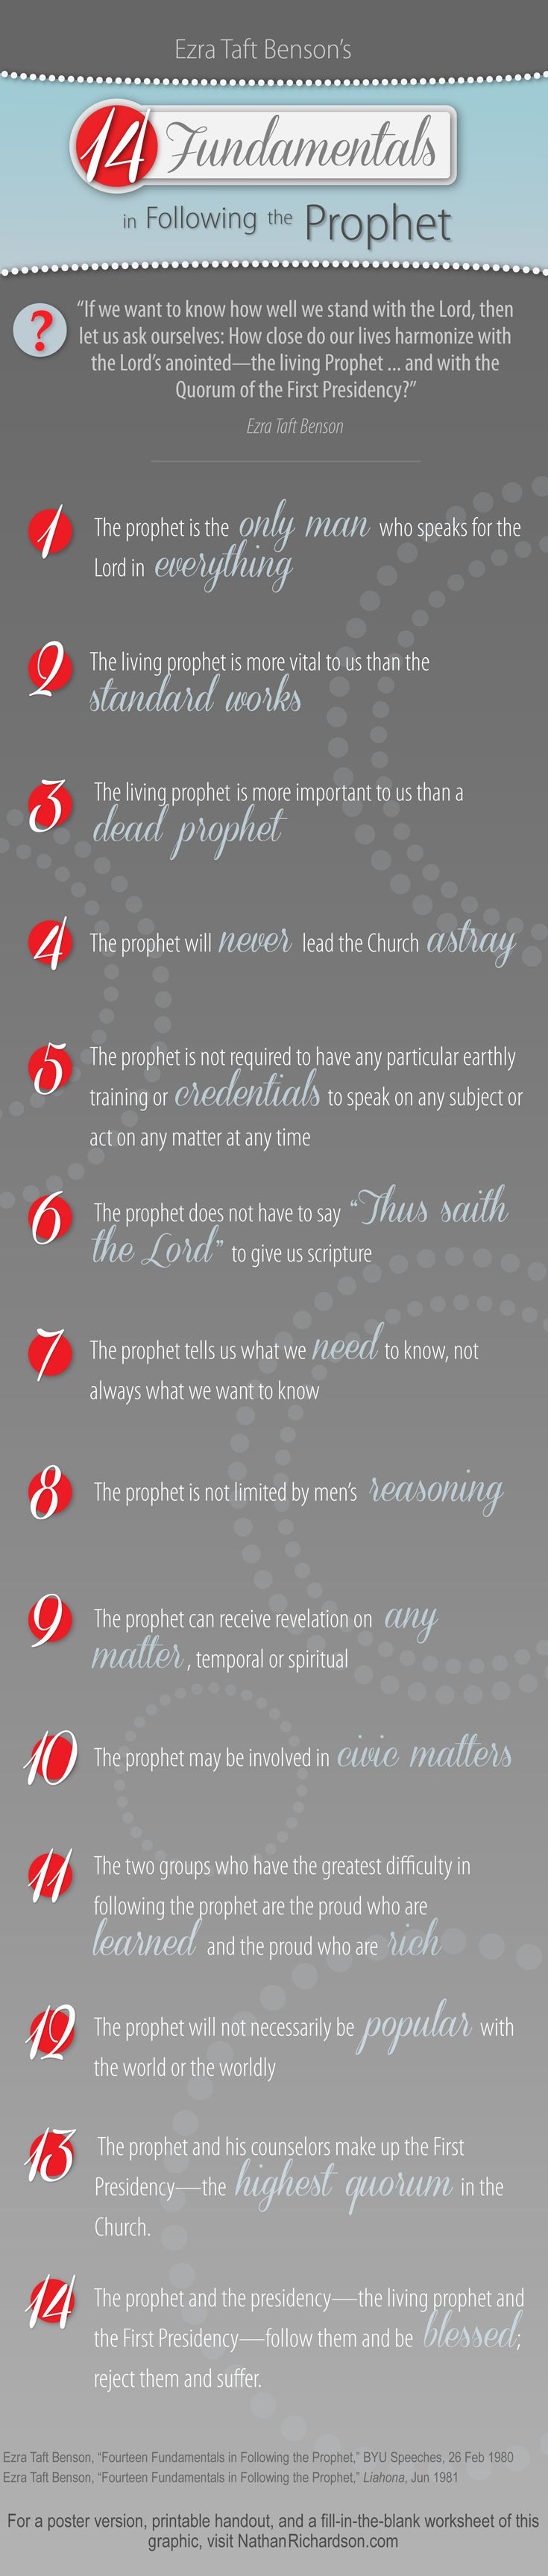 14 Fundamentals in Following the Prophet - lesson materials, worksheets, posters, etc. based on a talk by President Ezra Taft Benson